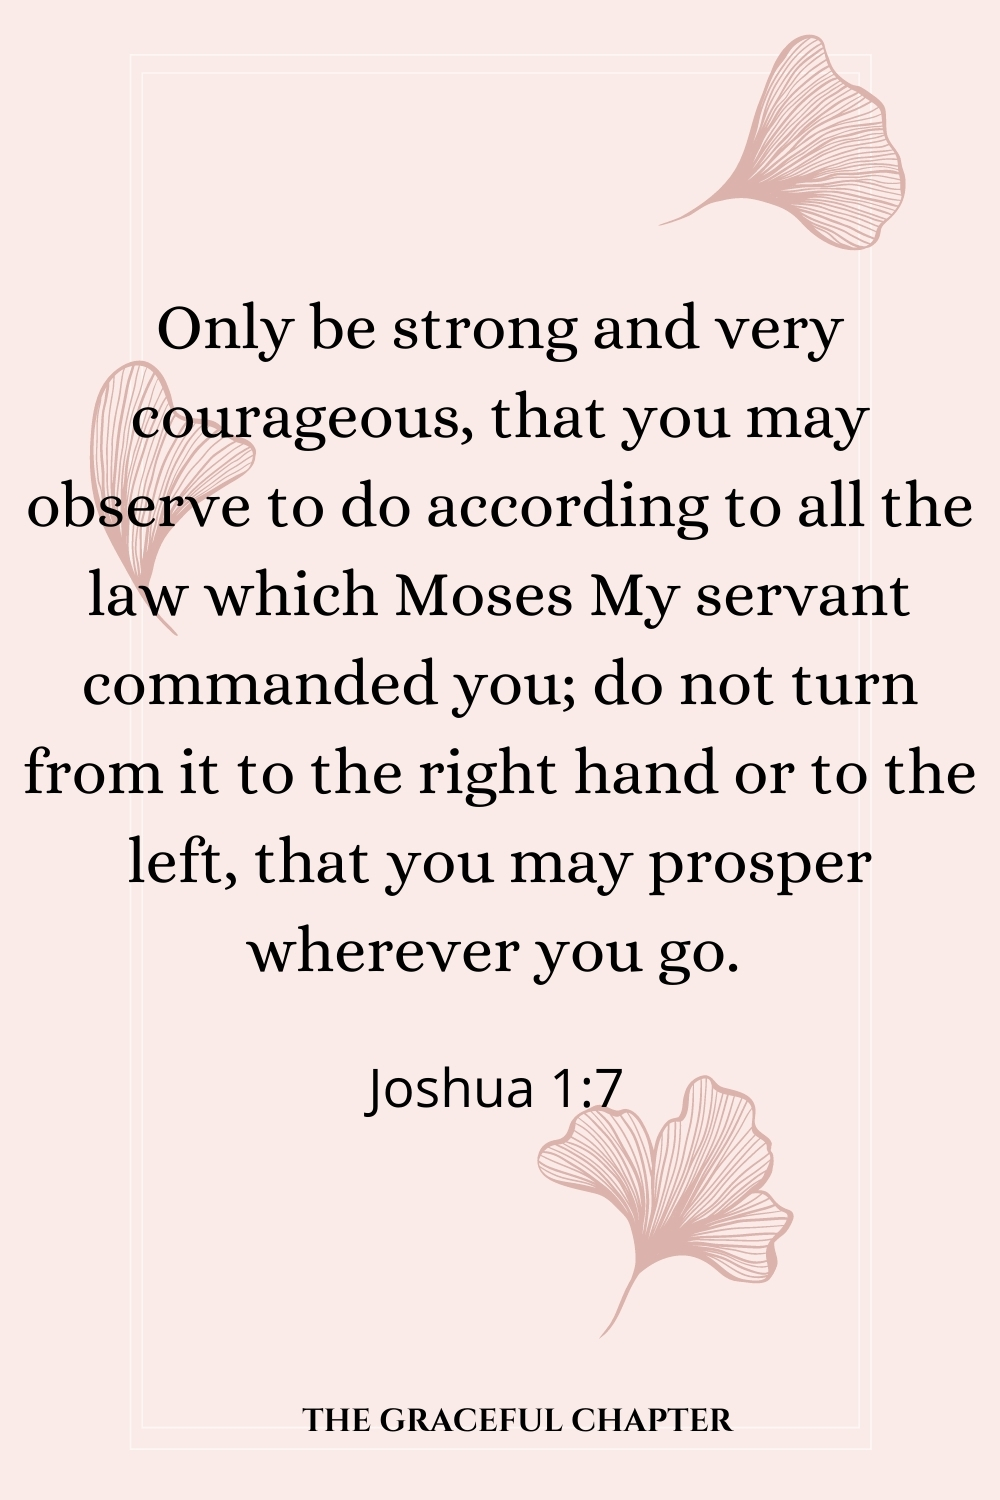 Only be strong and very courageous, that you may observe to do according to all the law which Moses My servant commanded you; do not turn from it to the right hand or to the left, that you may prosper wherever you go.  Joshua 1:7